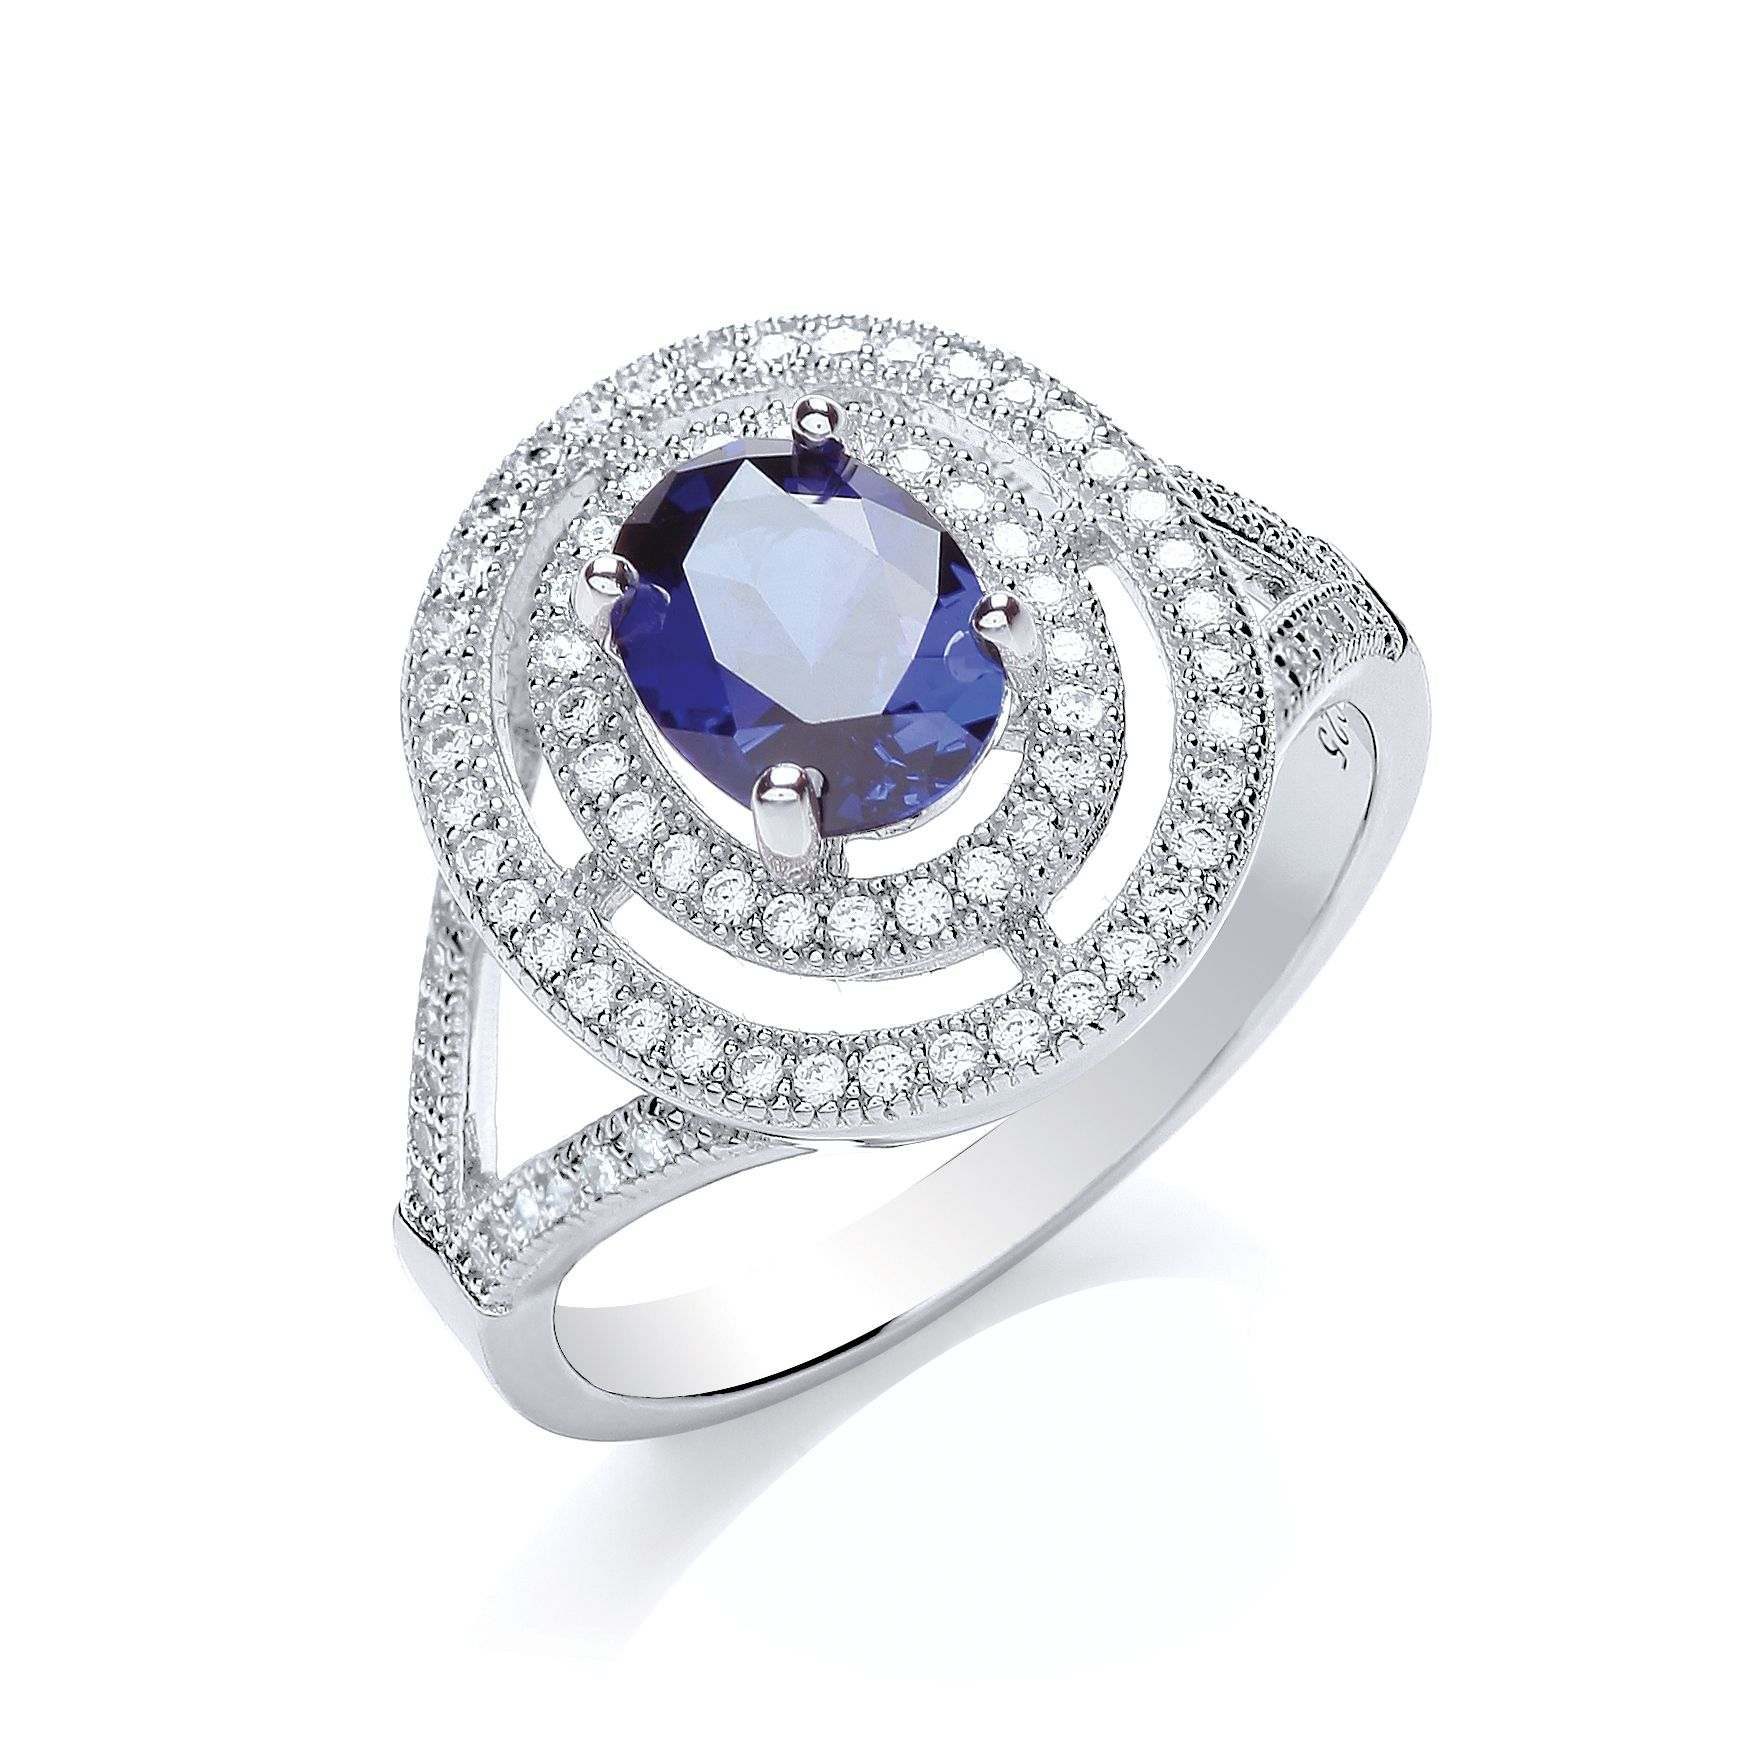 bouton oval surround ring